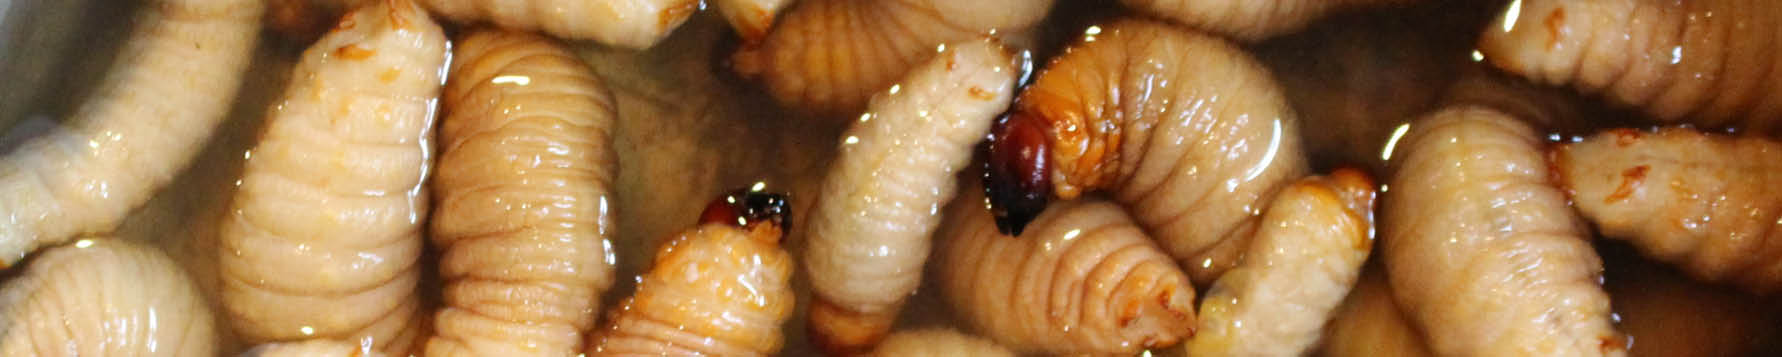 Why should I eat insects?